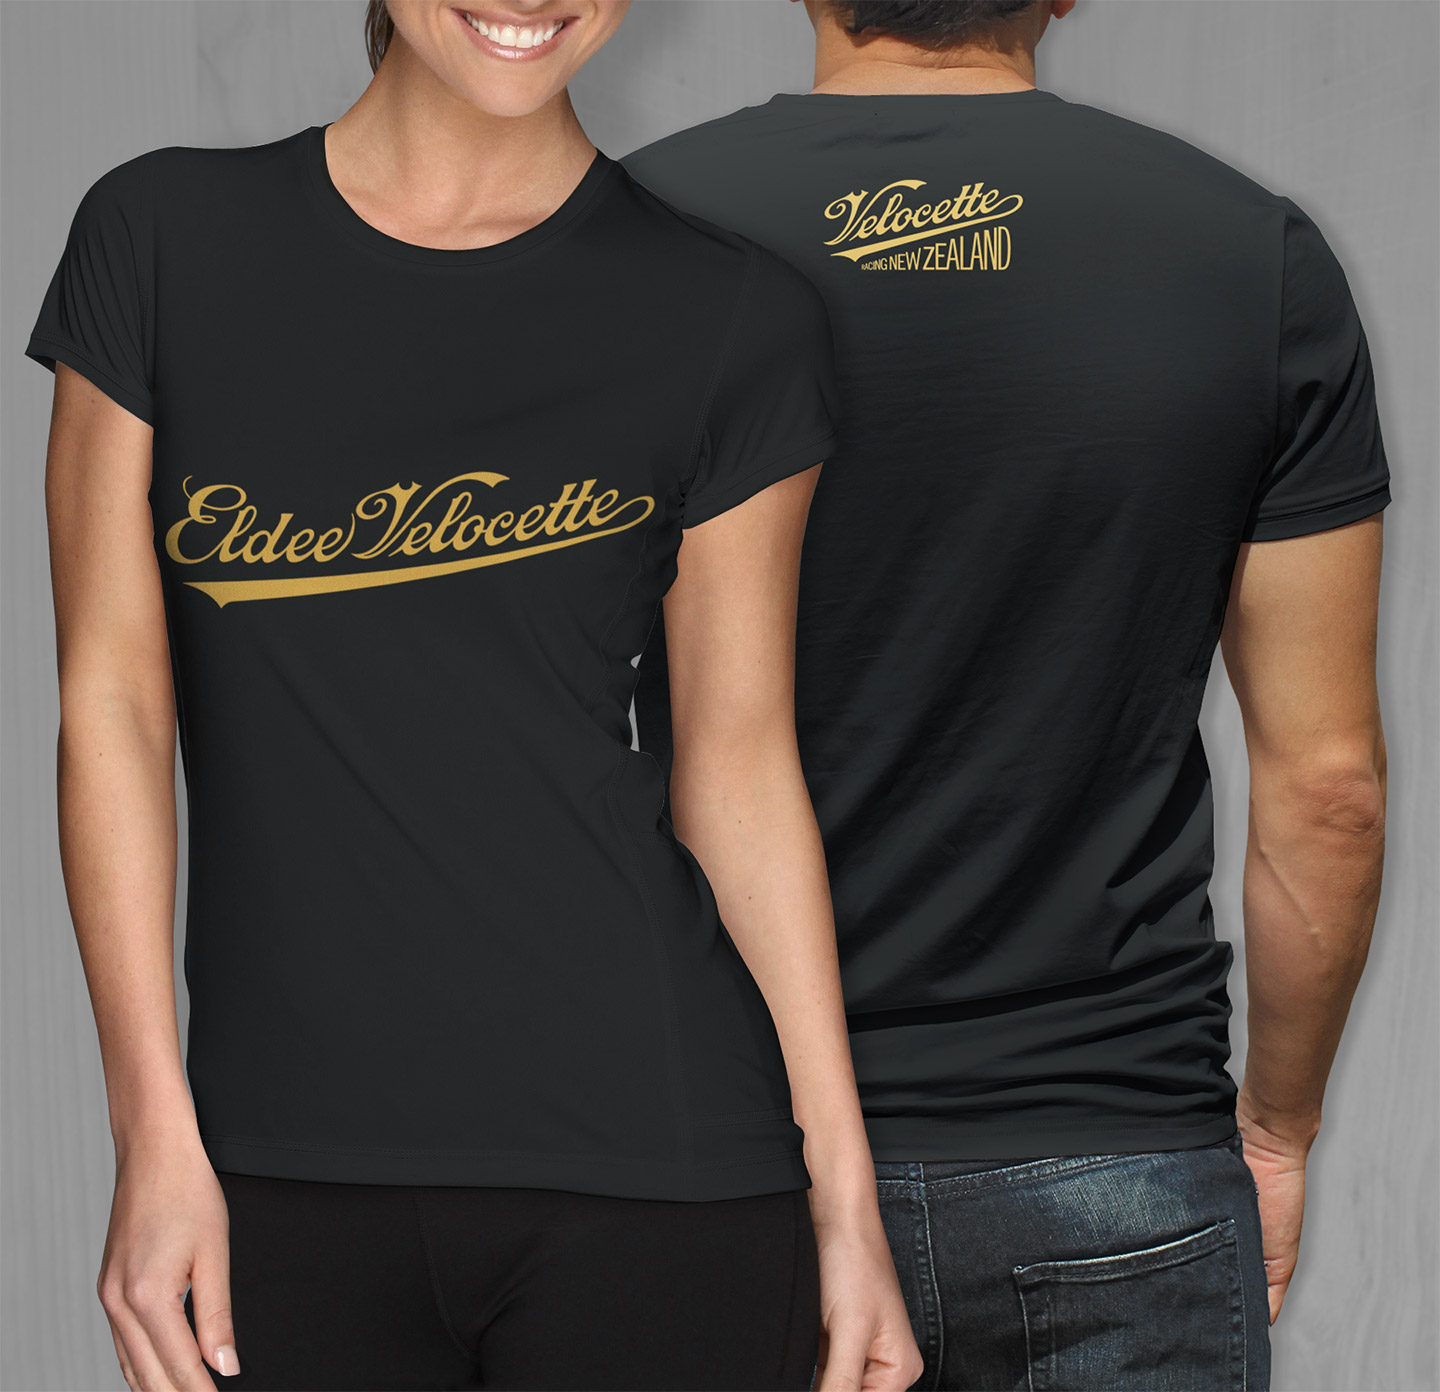 Tee shirts | velocetteracing